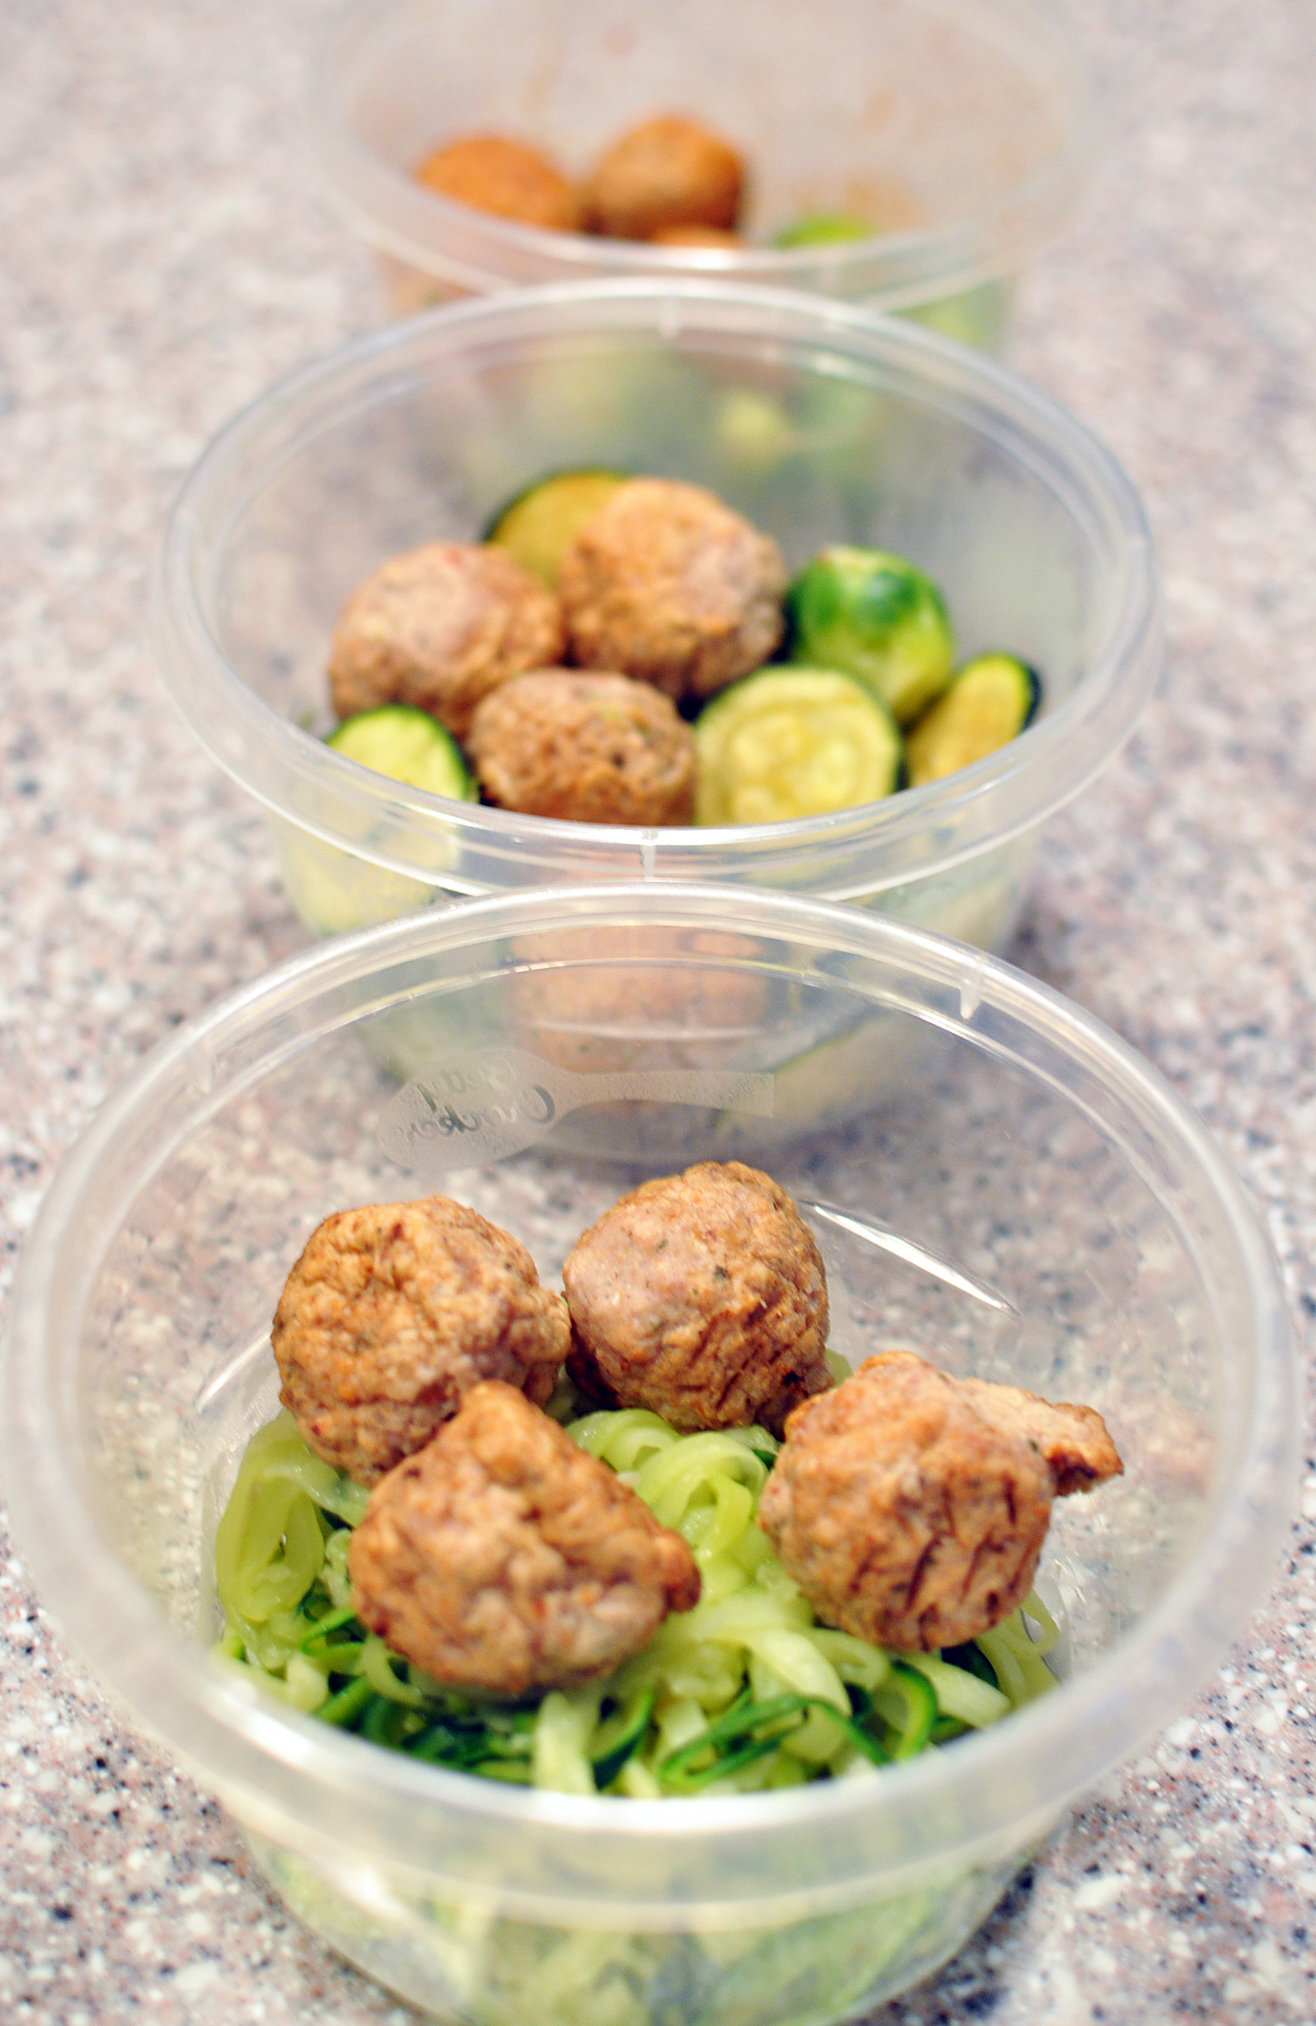 Meal Prep with Chicken Meatballs | One Target Trip, 3 Healthy Lunches!